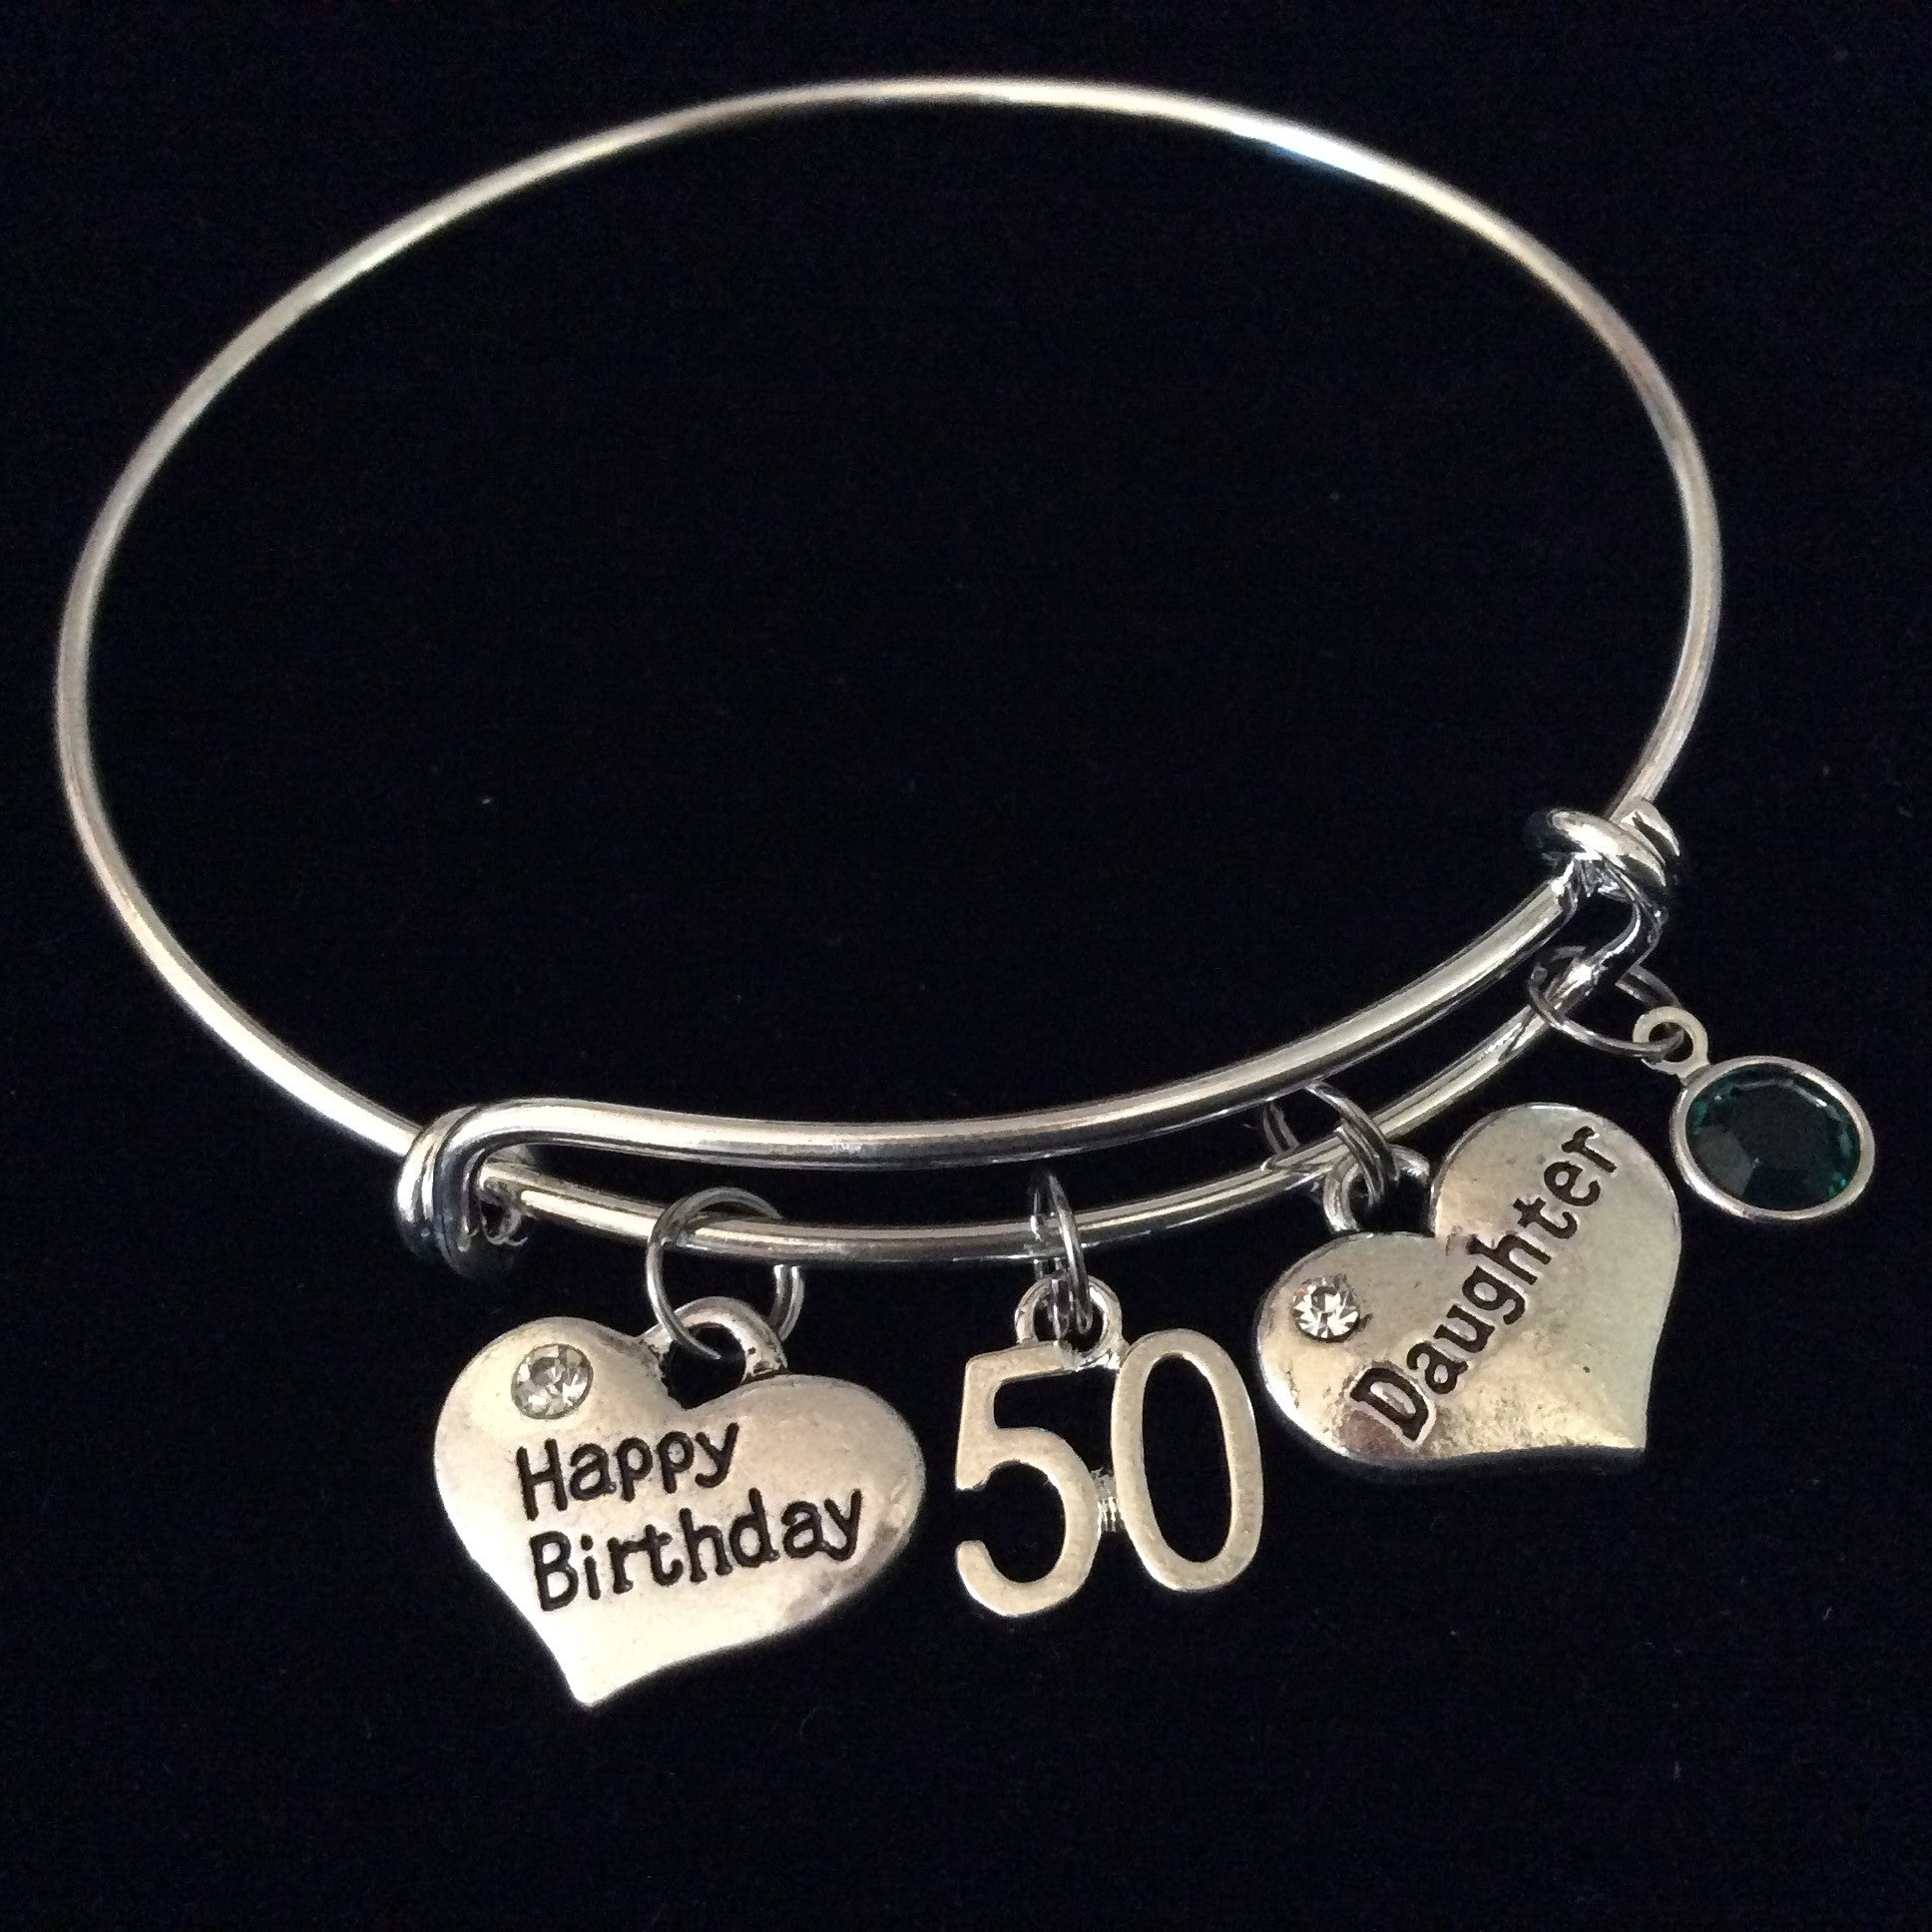 Daughter Happy Birthday 50th Expandable Charm Bracelet Adjustable Bangle Trendy Gift